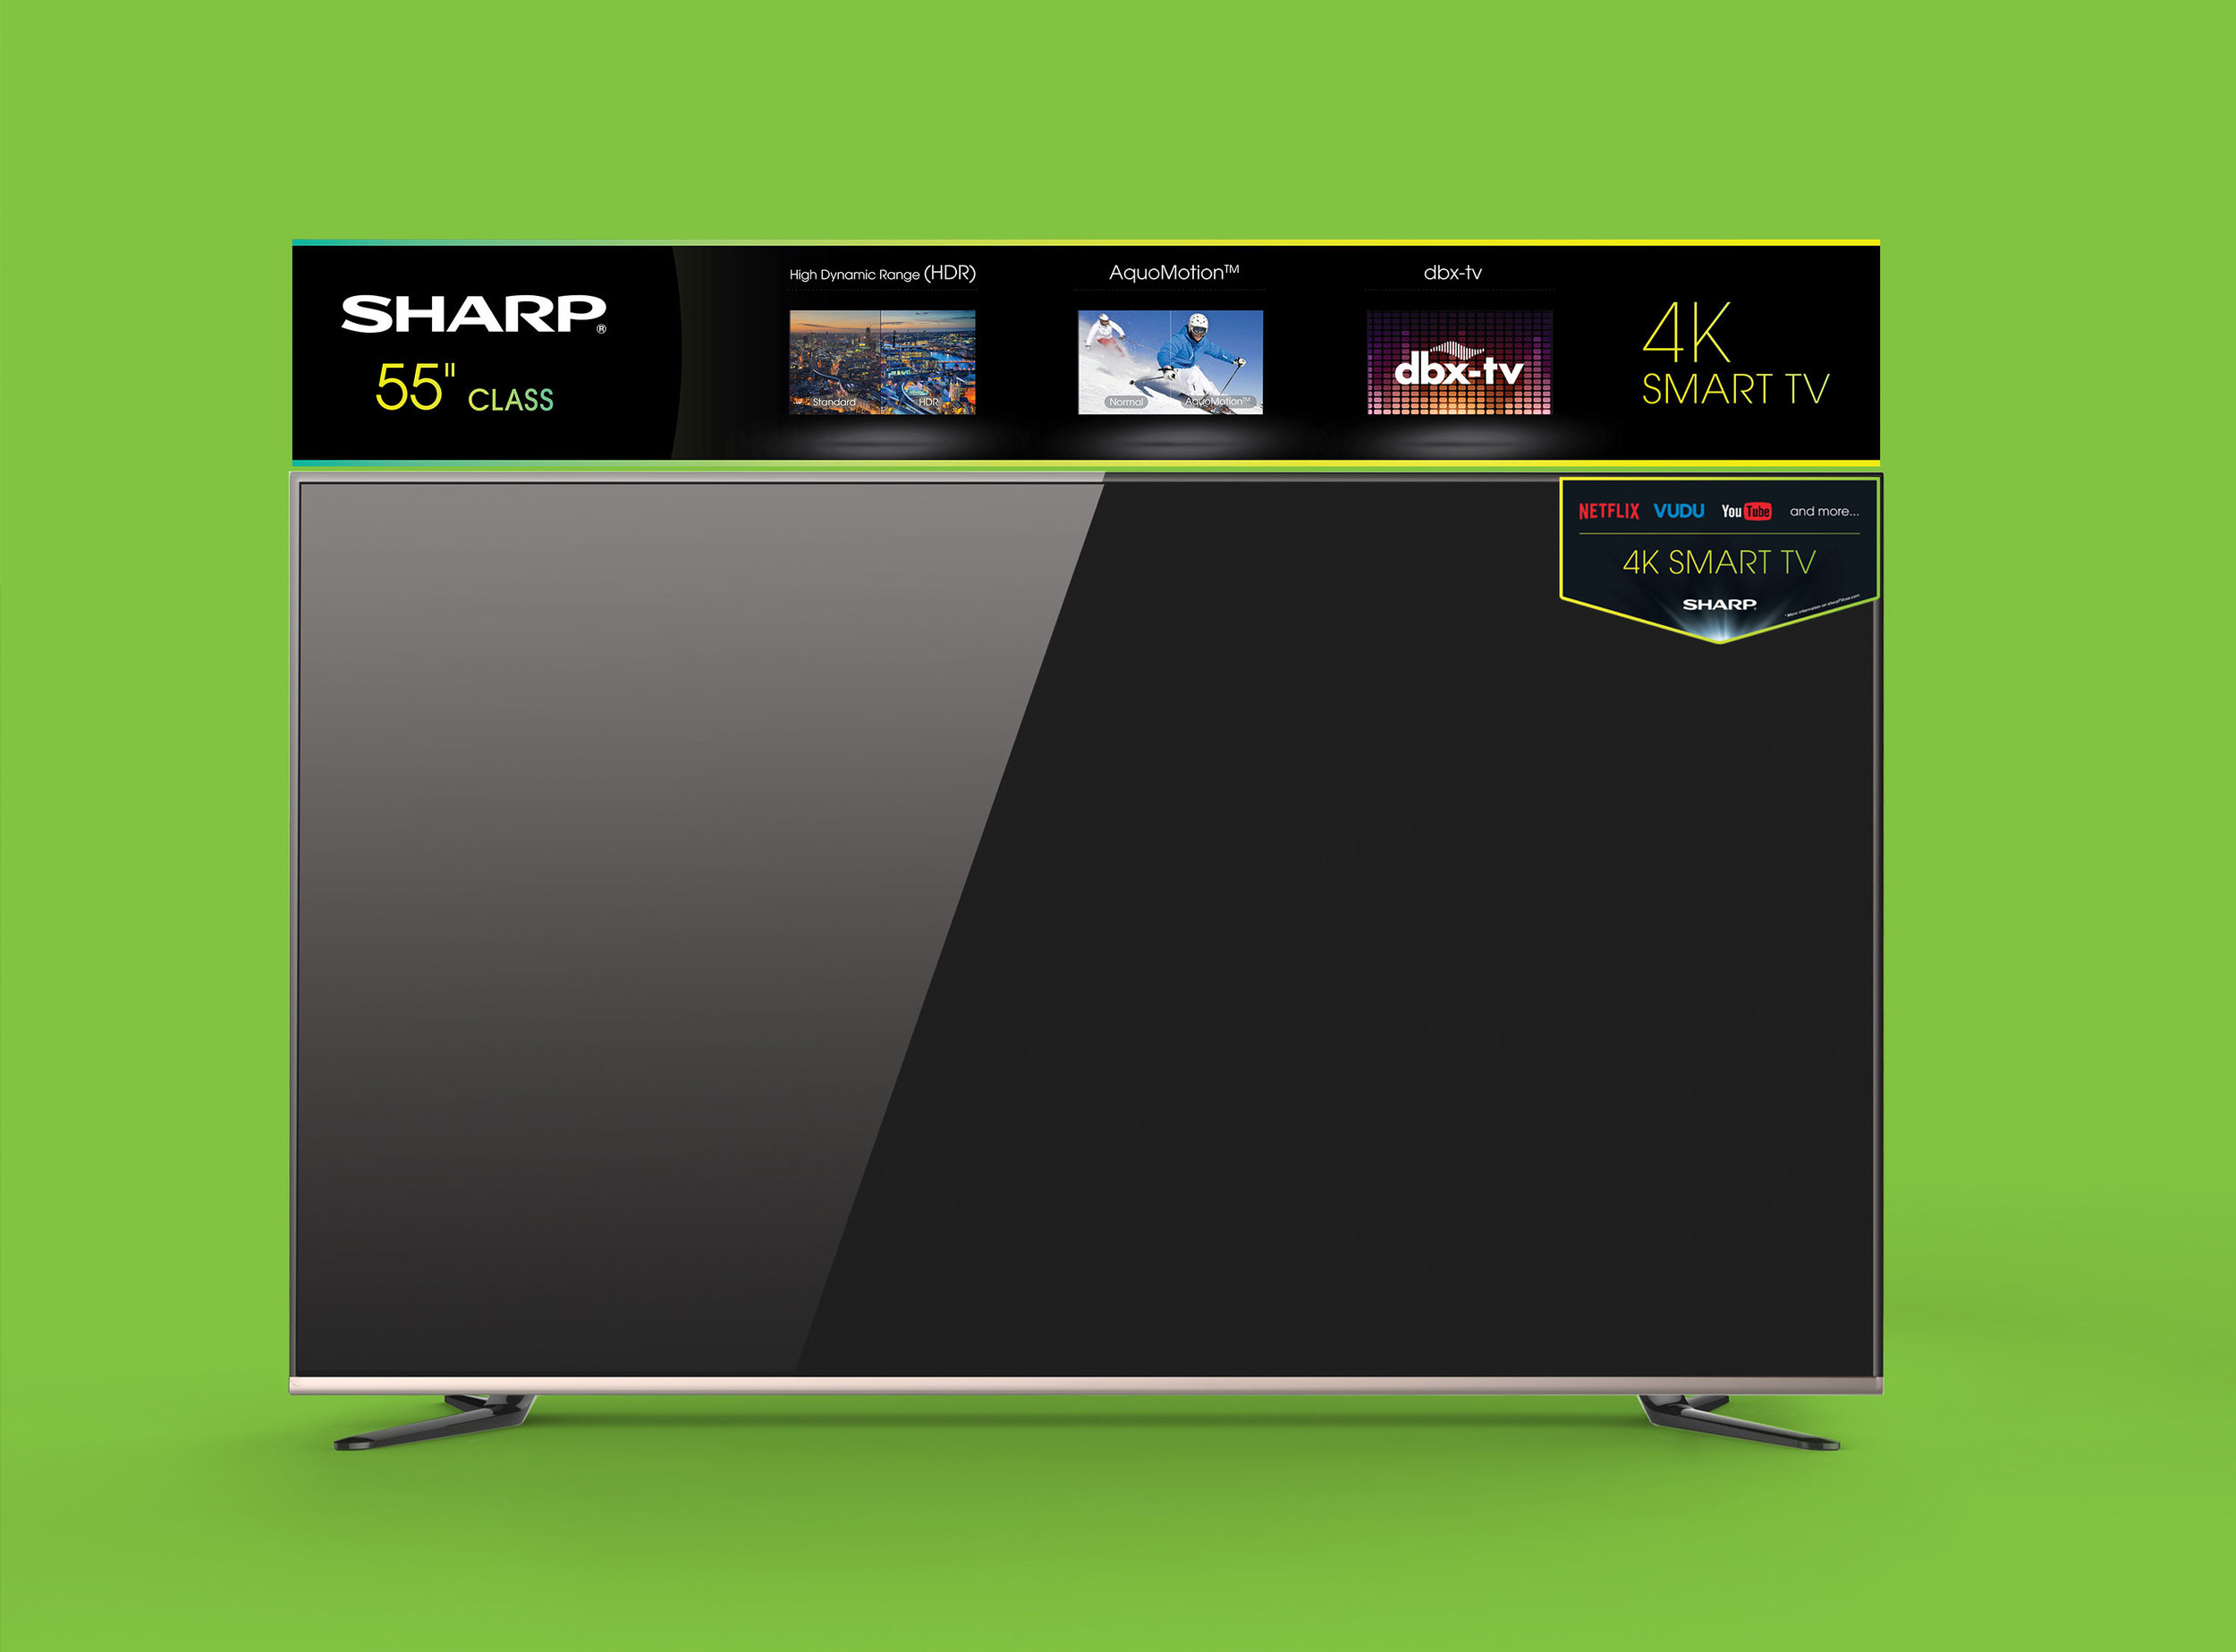 sharp-header_01.jpg